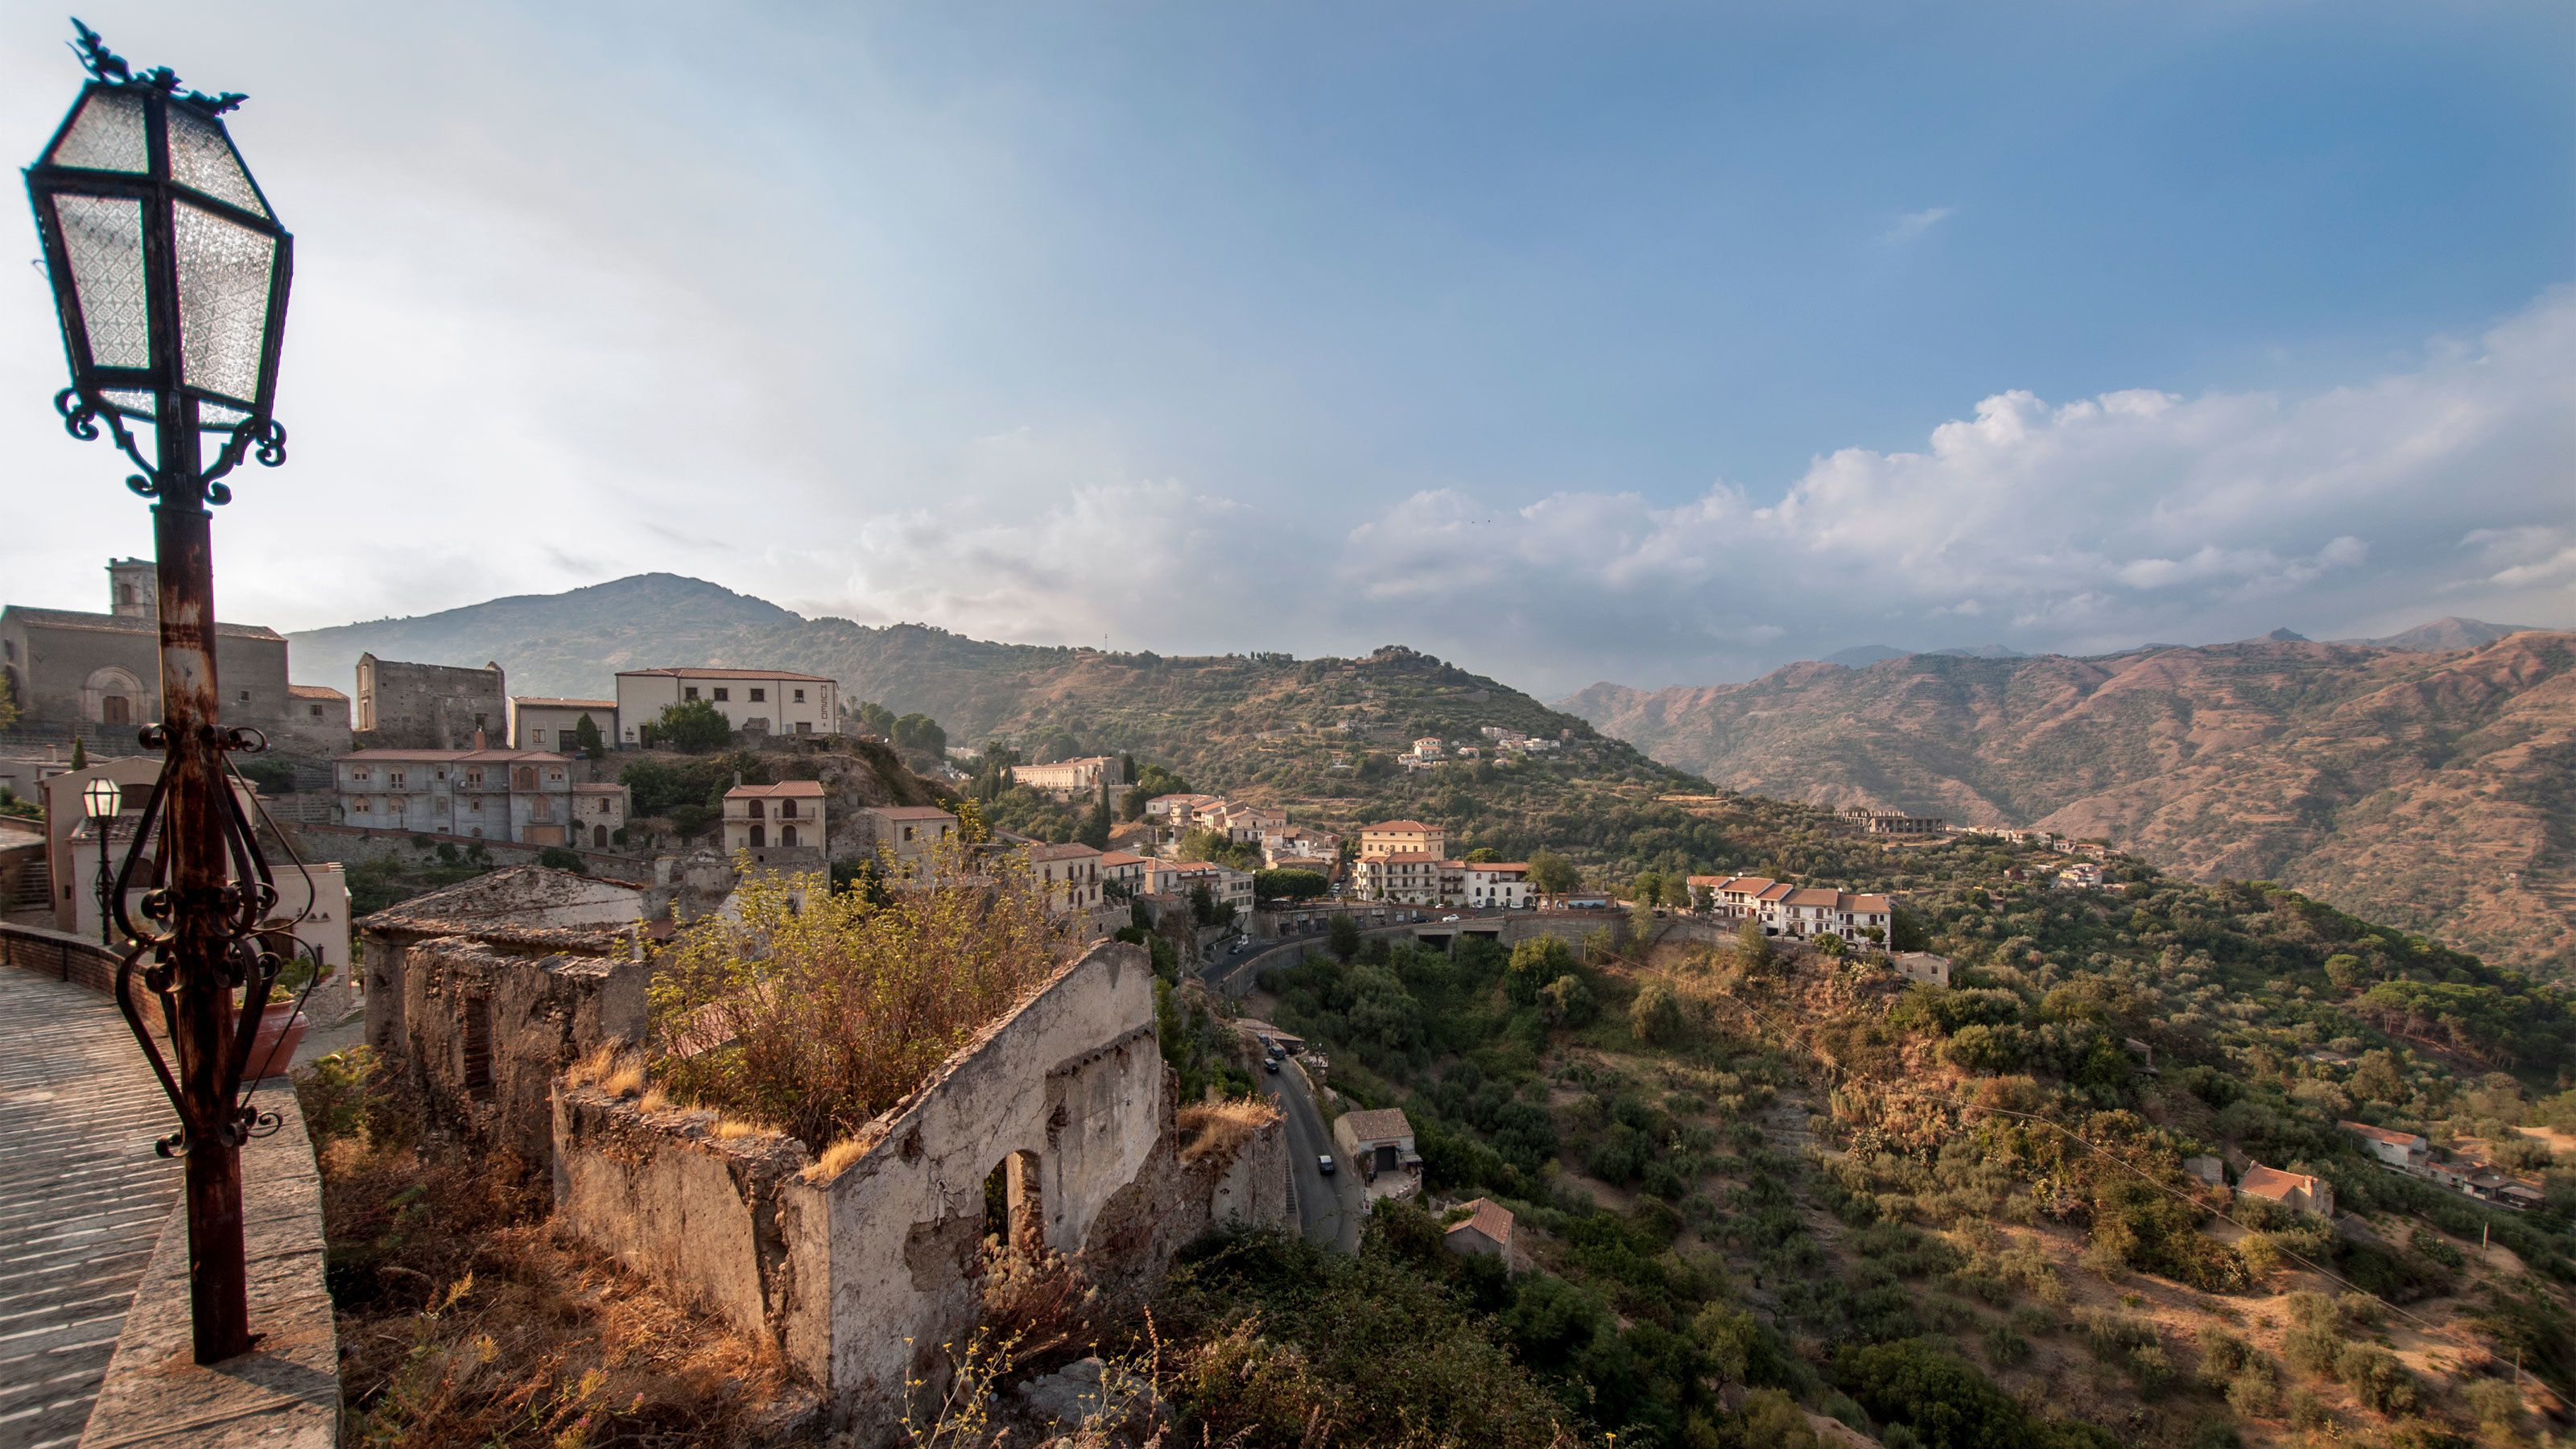 Town of Taormina nestled in the mountains of Sicily